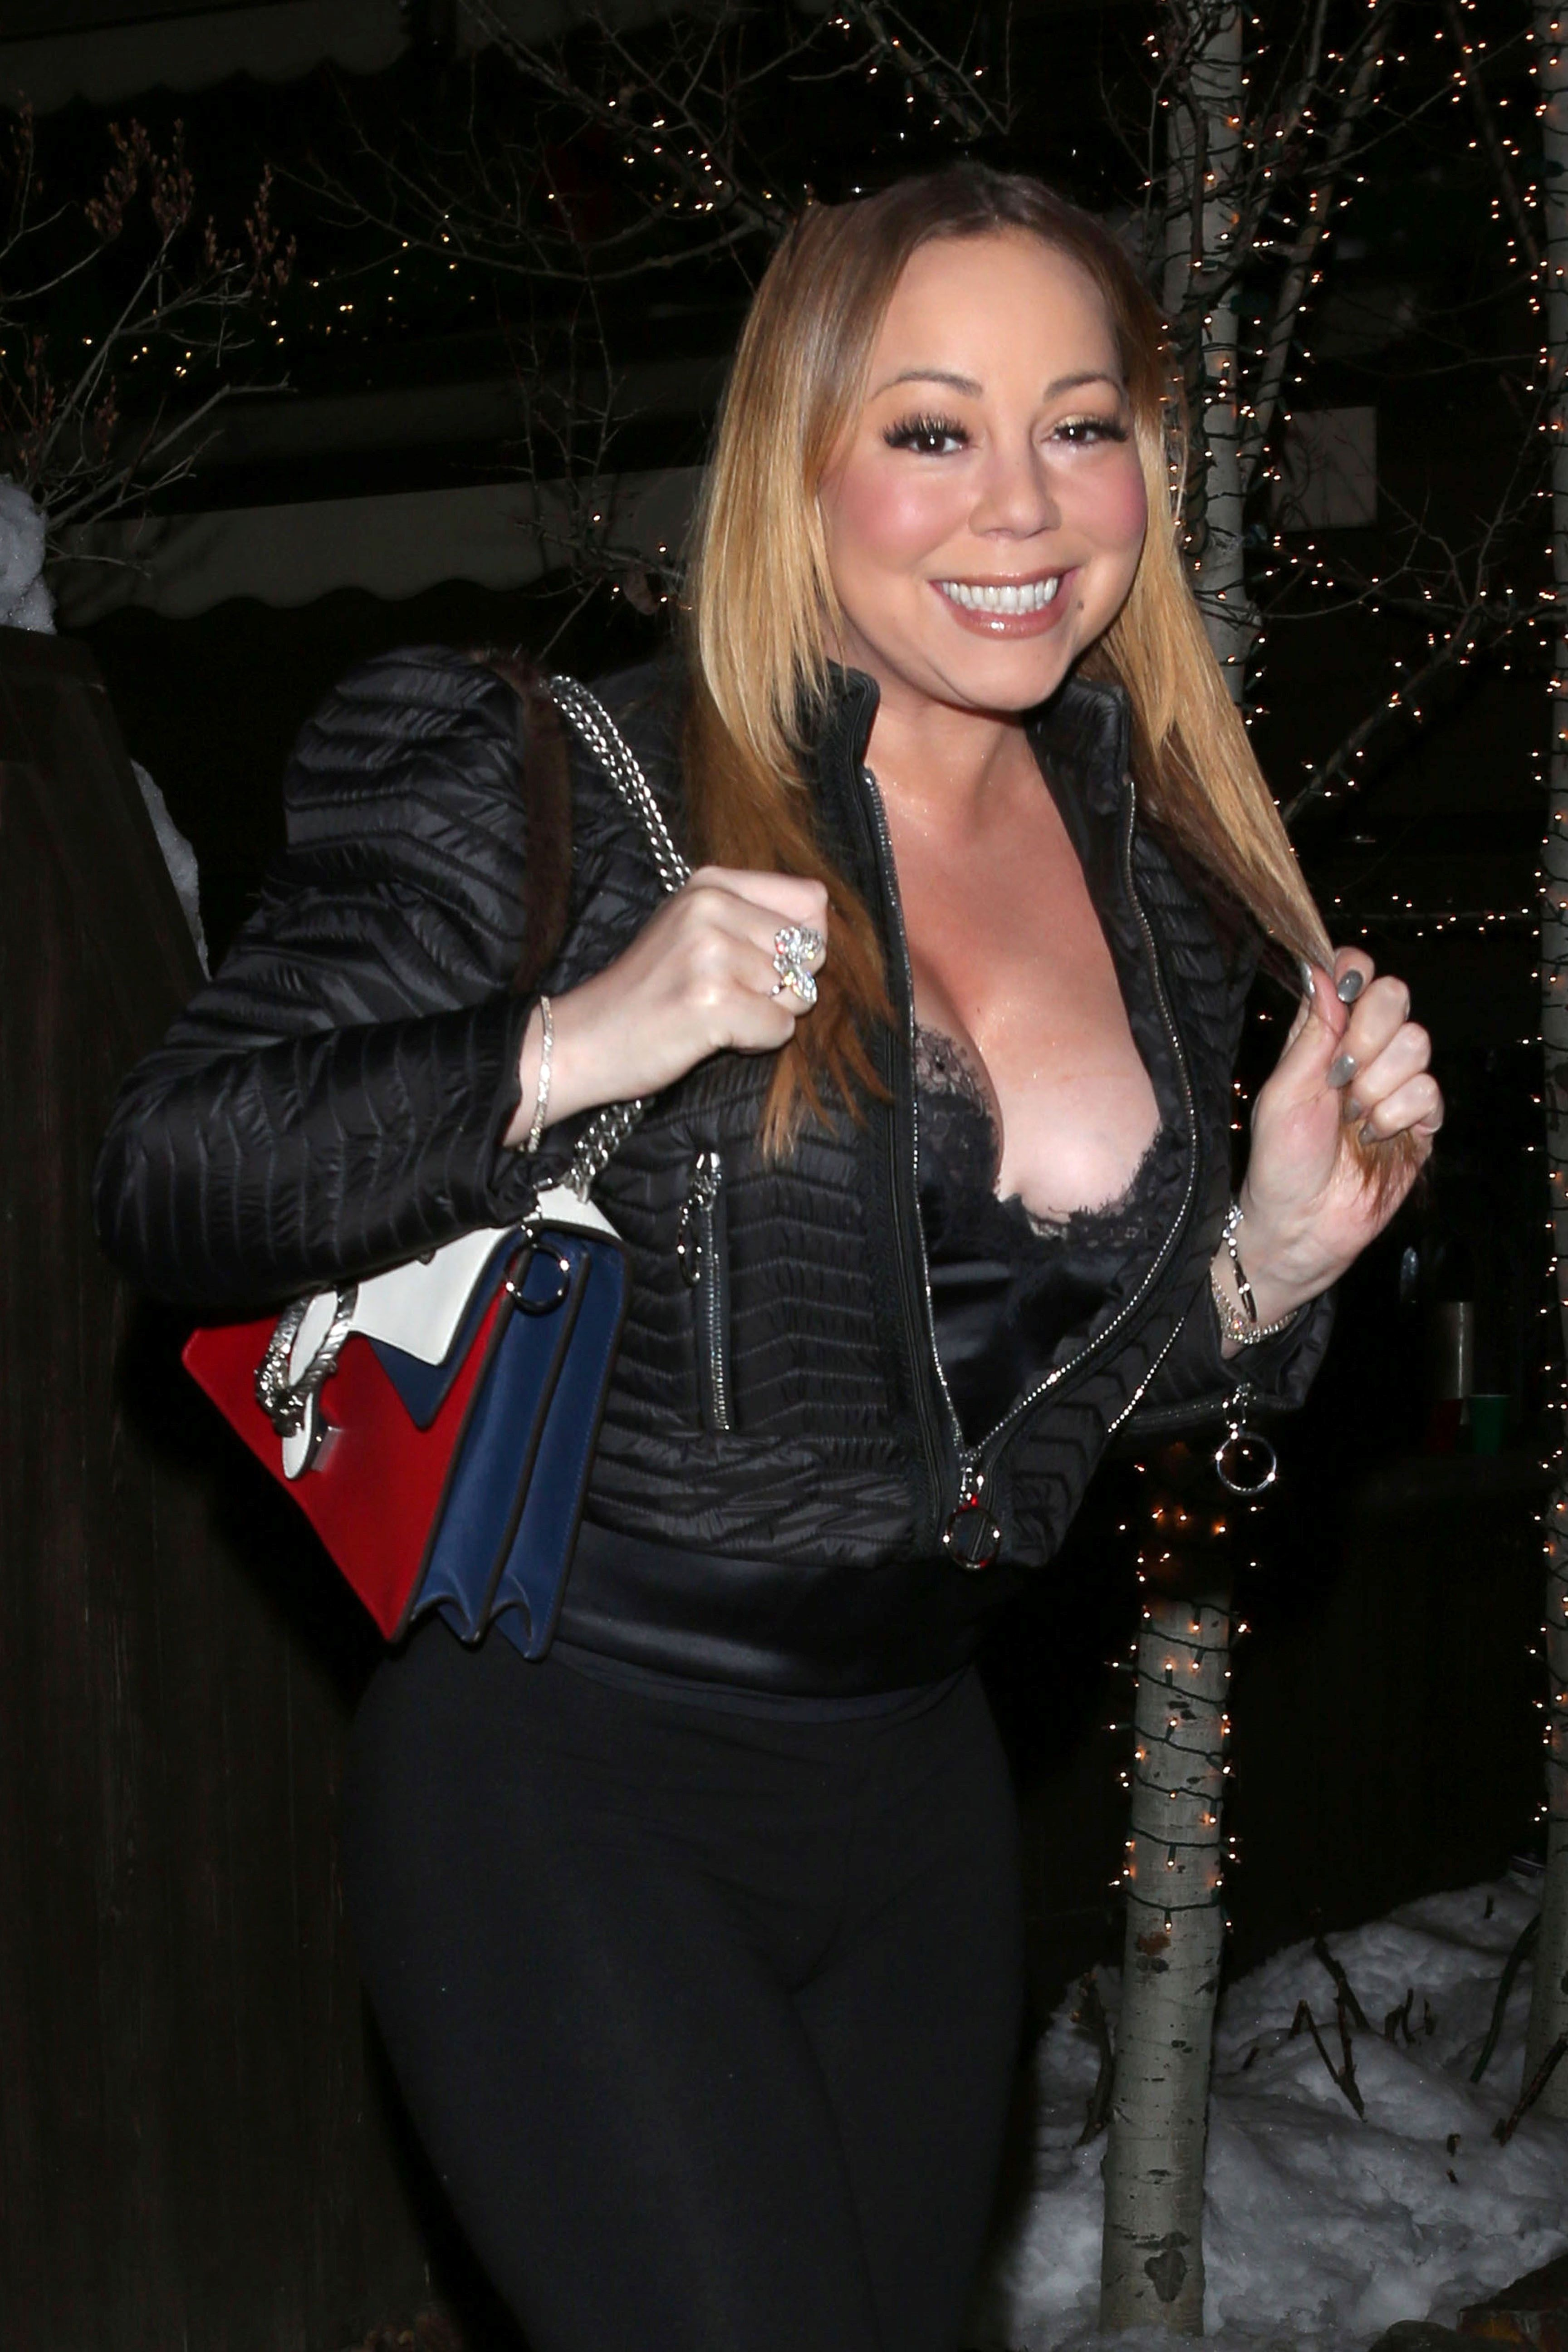 Cleavage Photos Of Mariah...